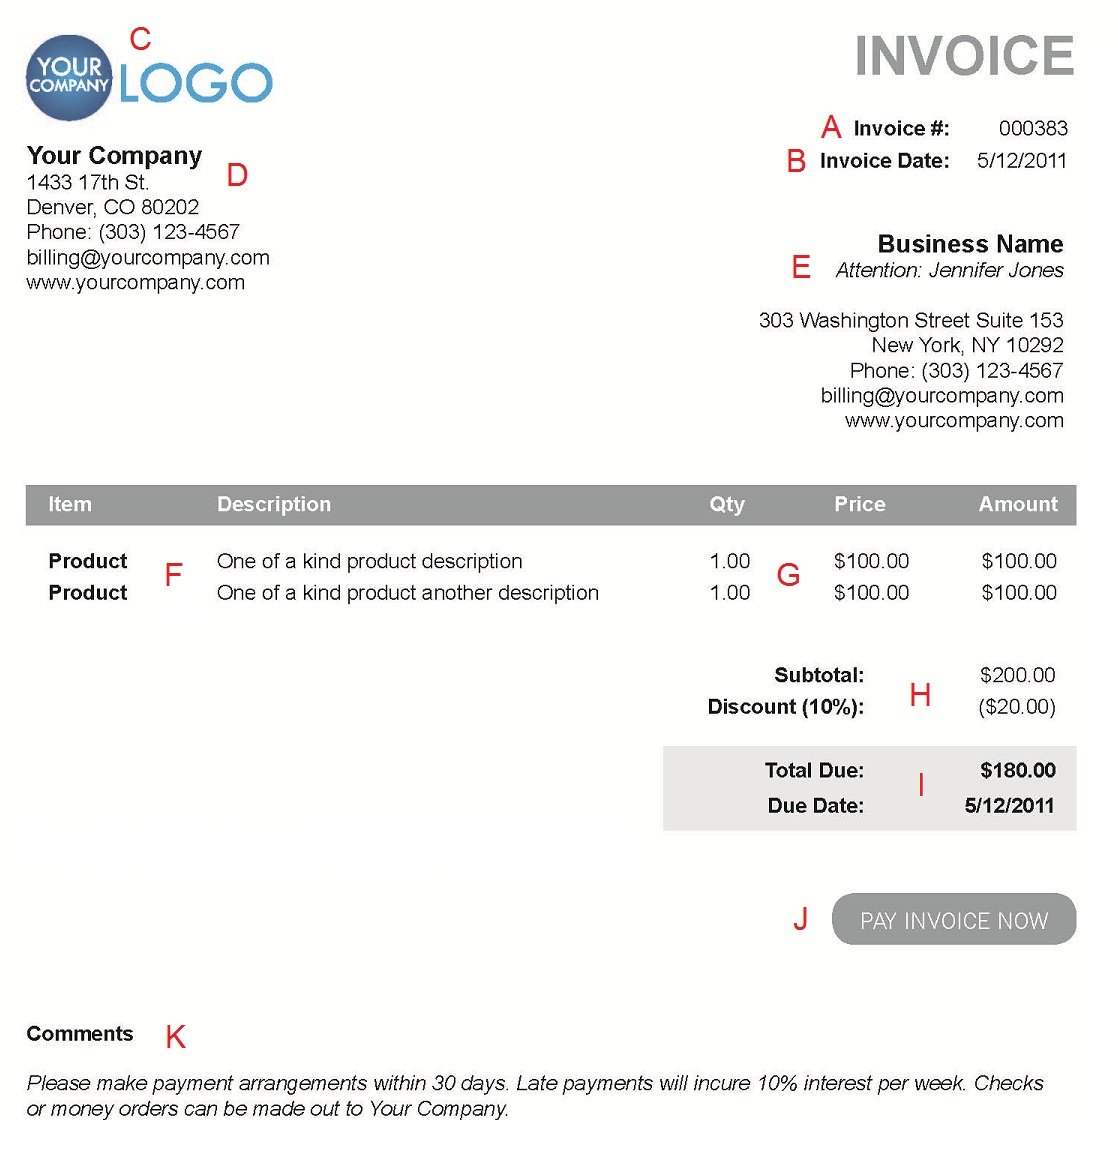 Electronicmedicalbillingus  Ravishing The  Different Sections Of An Electronic Payment Invoice With Lovable A  With Appealing What Is The Difference Between Msrp And Invoice Also Free Invoicing Program In Addition What Is The Dealer Invoice And Invoicing Software Mac As Well As How To Make An Invoice Template Additionally What Is The Invoice Price On A Car From Paysimplecom With Electronicmedicalbillingus  Lovable The  Different Sections Of An Electronic Payment Invoice With Appealing A  And Ravishing What Is The Difference Between Msrp And Invoice Also Free Invoicing Program In Addition What Is The Dealer Invoice From Paysimplecom